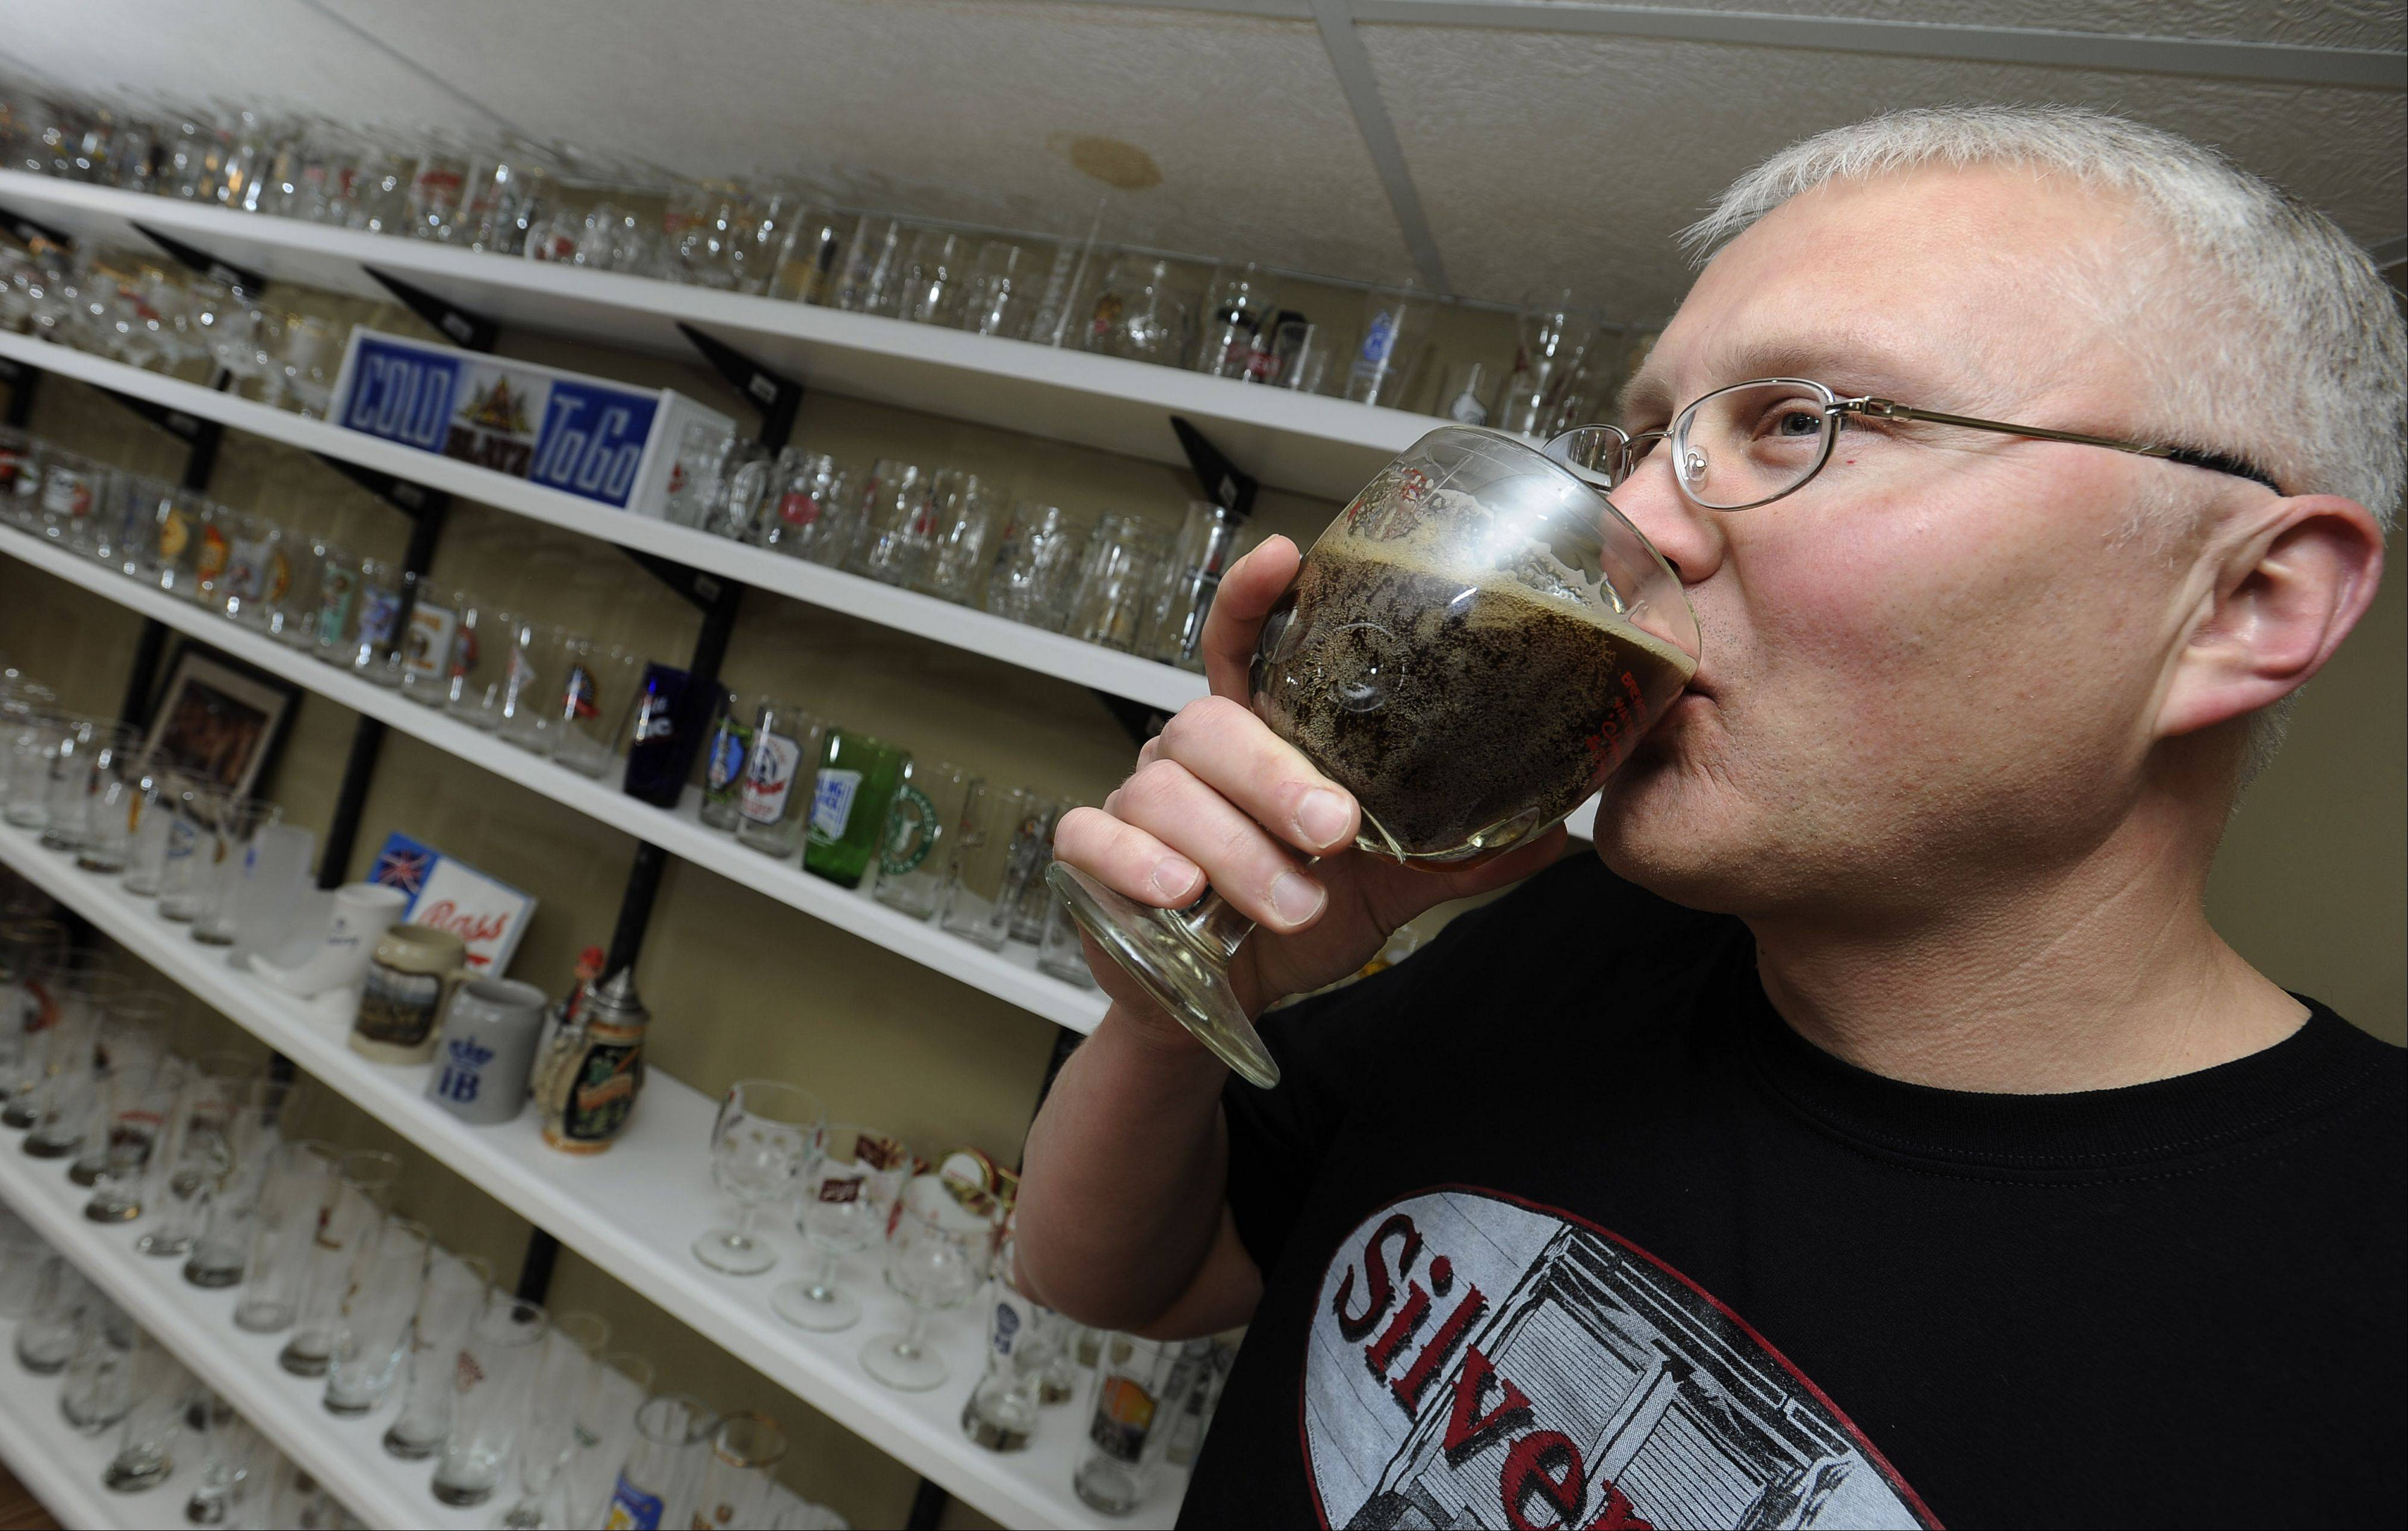 Rich Placko samples beer that he brewed in his Elgin home. He wanted to serve it at a fundraiser but discovered it might be illegal.